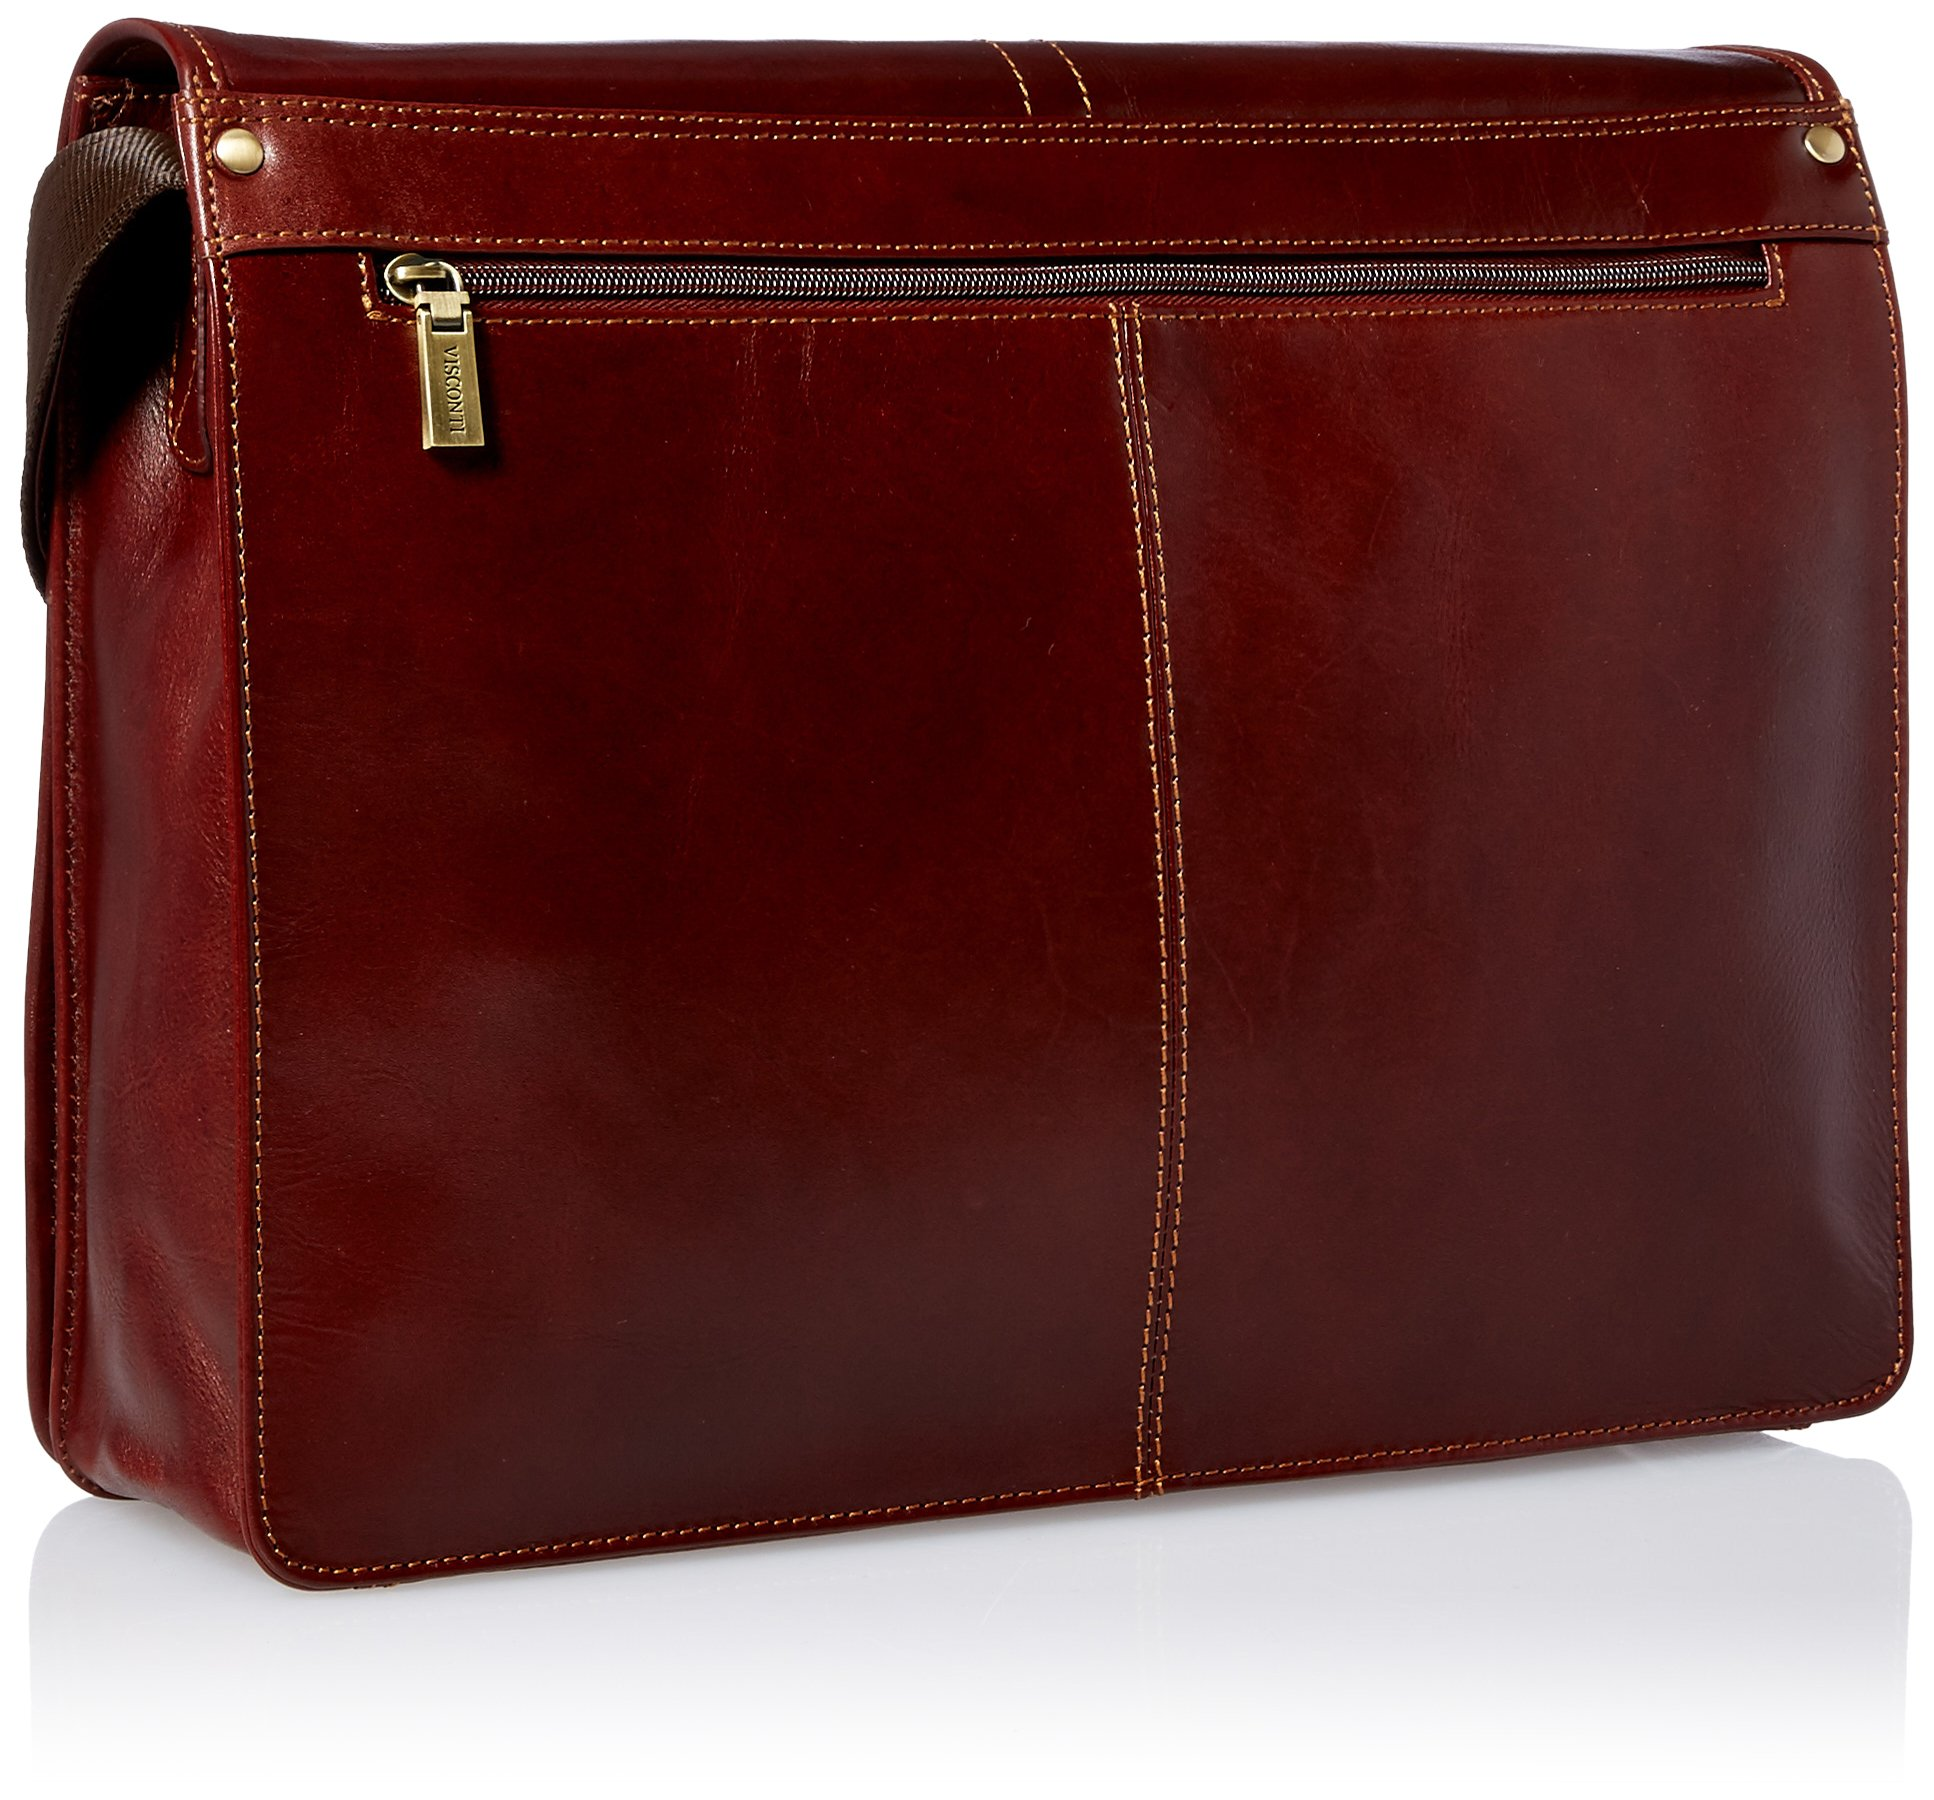 Visconti Vintage-7 Veg Tan Brown Soft Leather Messenger Bag Case, Brown, One Size by Visconti (Image #2)